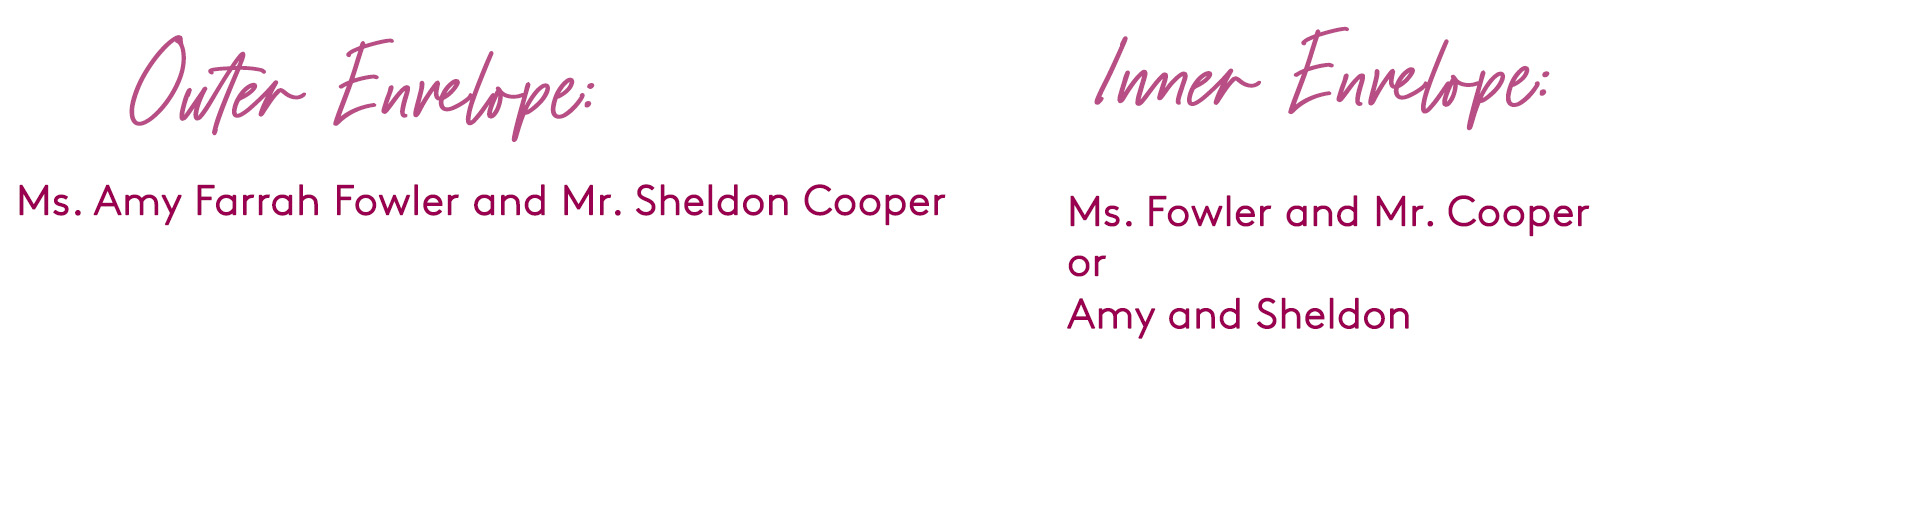 how to address wedding invitation to unmarried couple living together